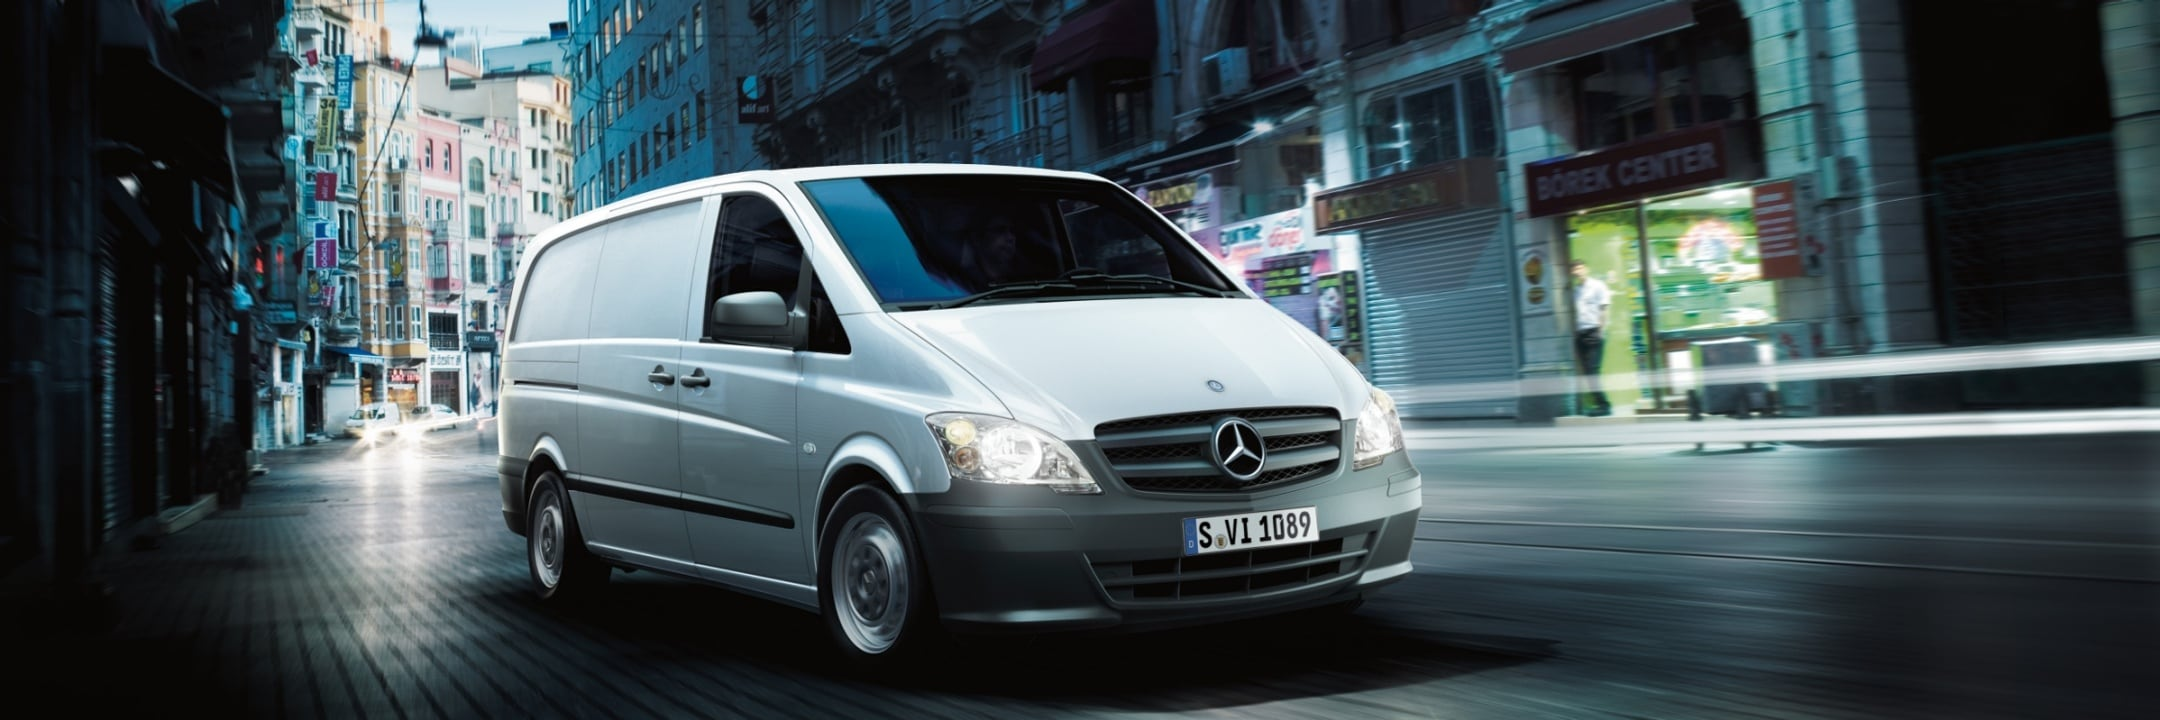 Promotions and offers for your Mercedes-Benz van